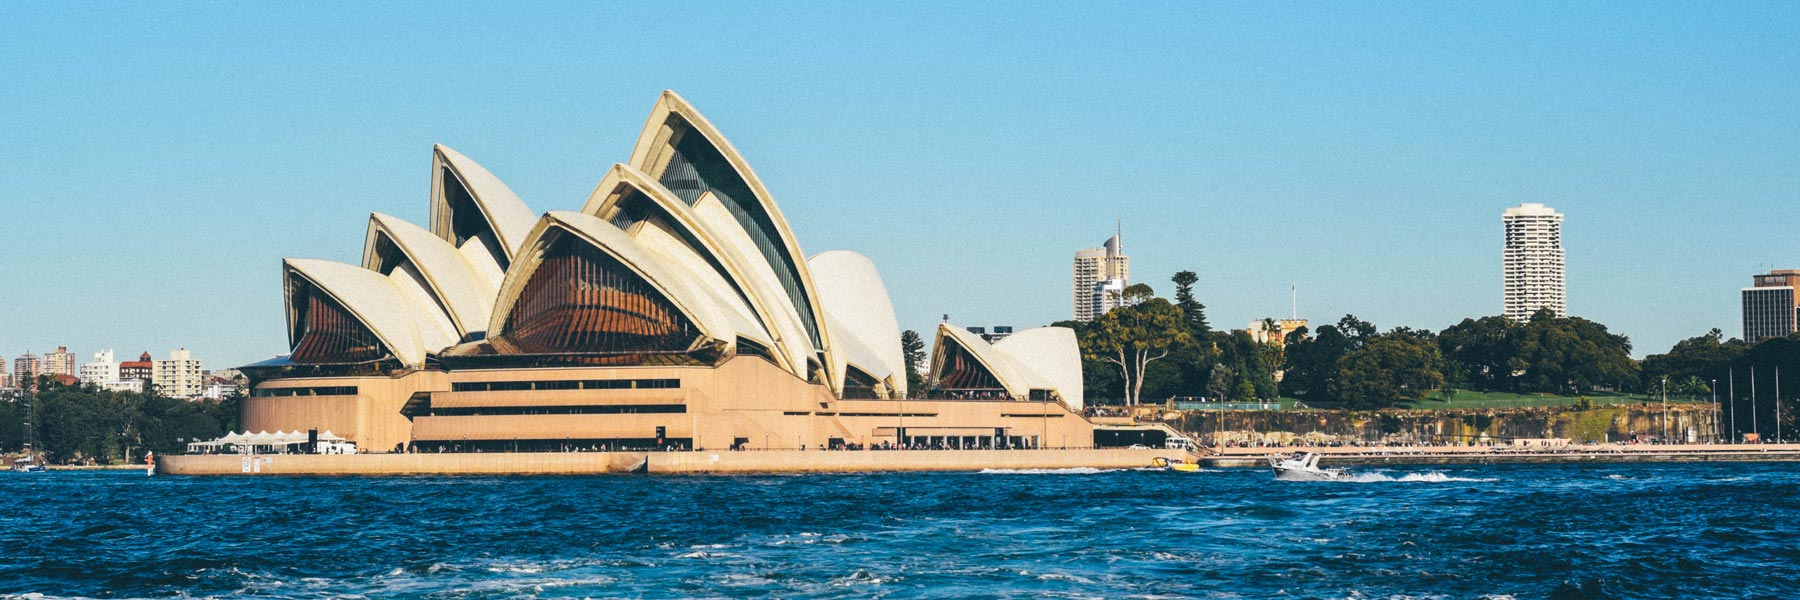 Removals And Relocations In The City Of Sydney